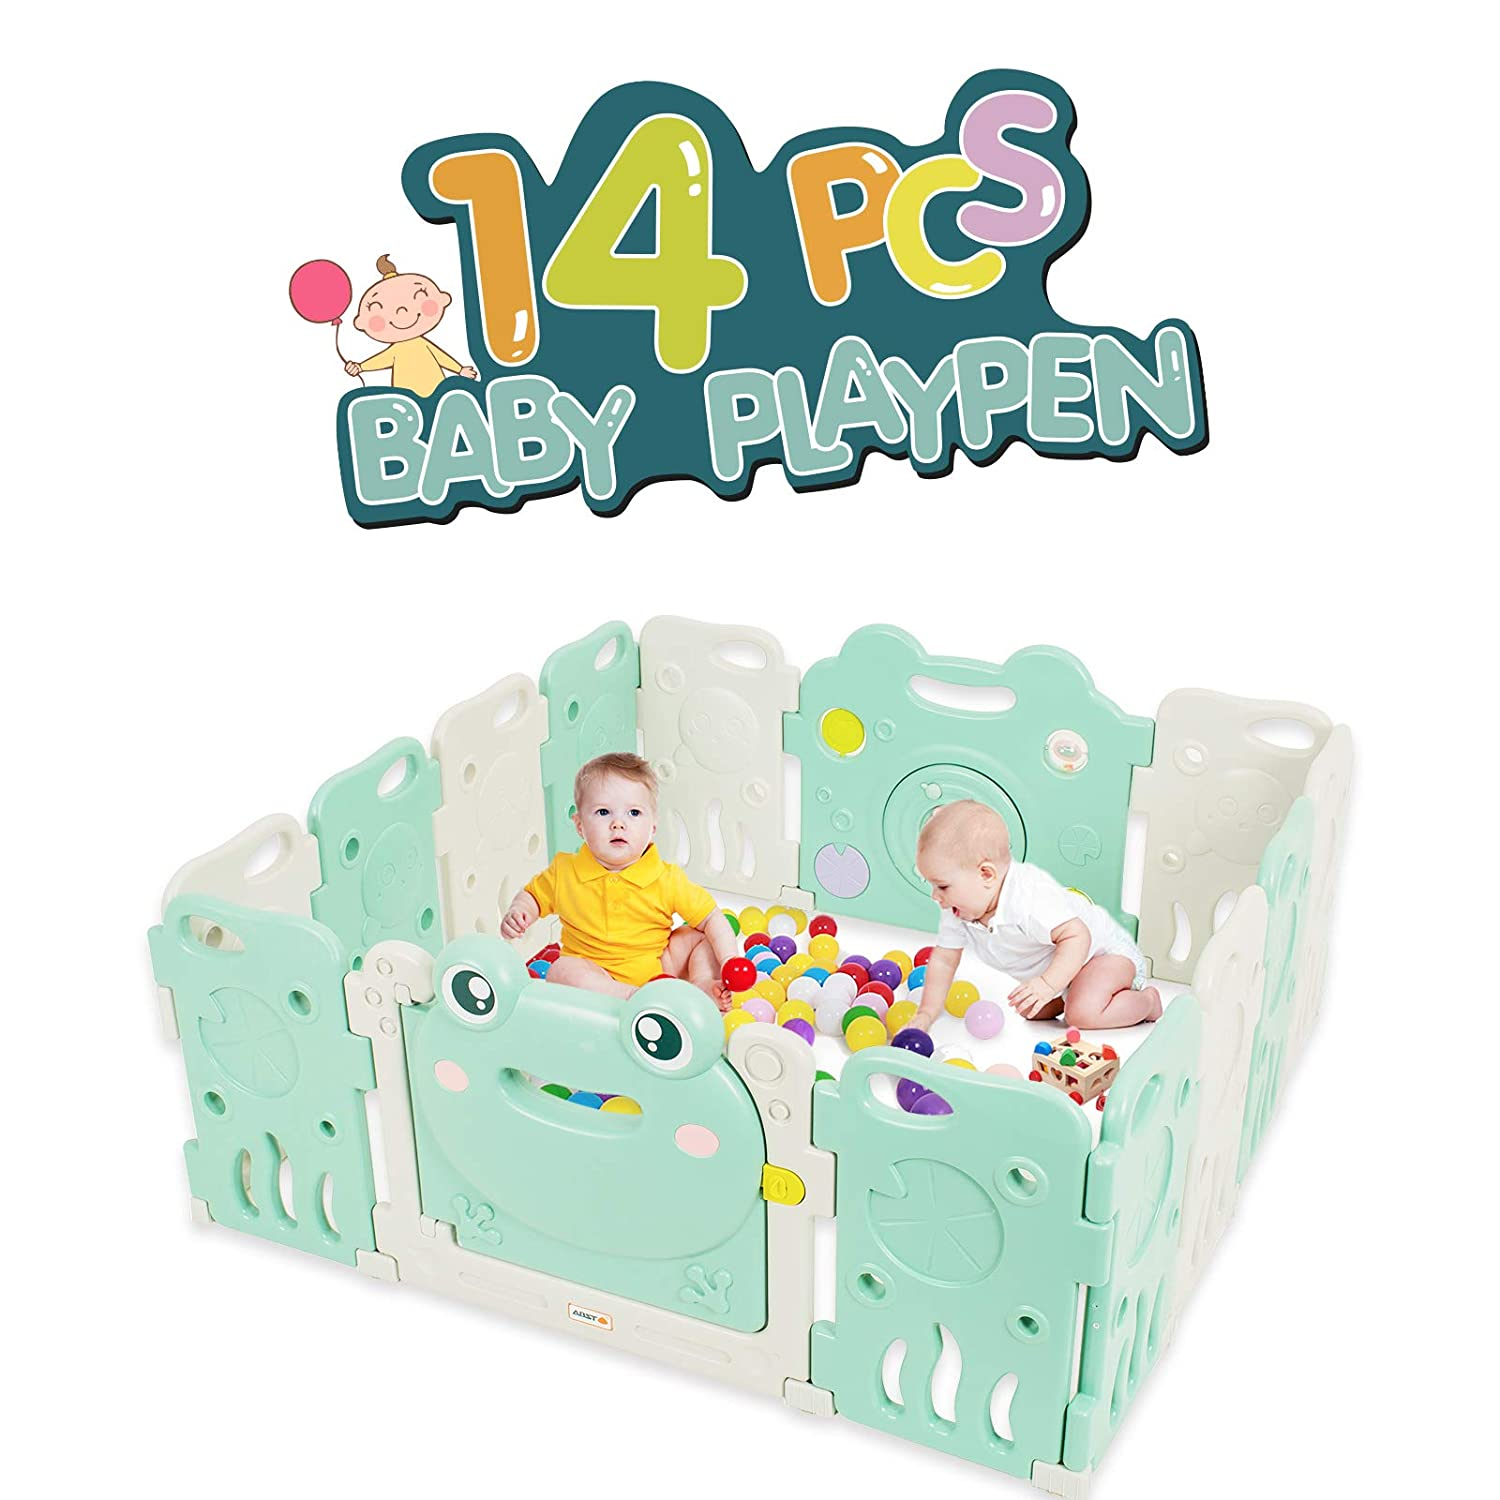 Baby Playpen - Kids 14 Panel Activity Centre Safety Play Yard, Home Indoor Outdoor New Pen - Frog Design TCBUNNY BPYFROG14